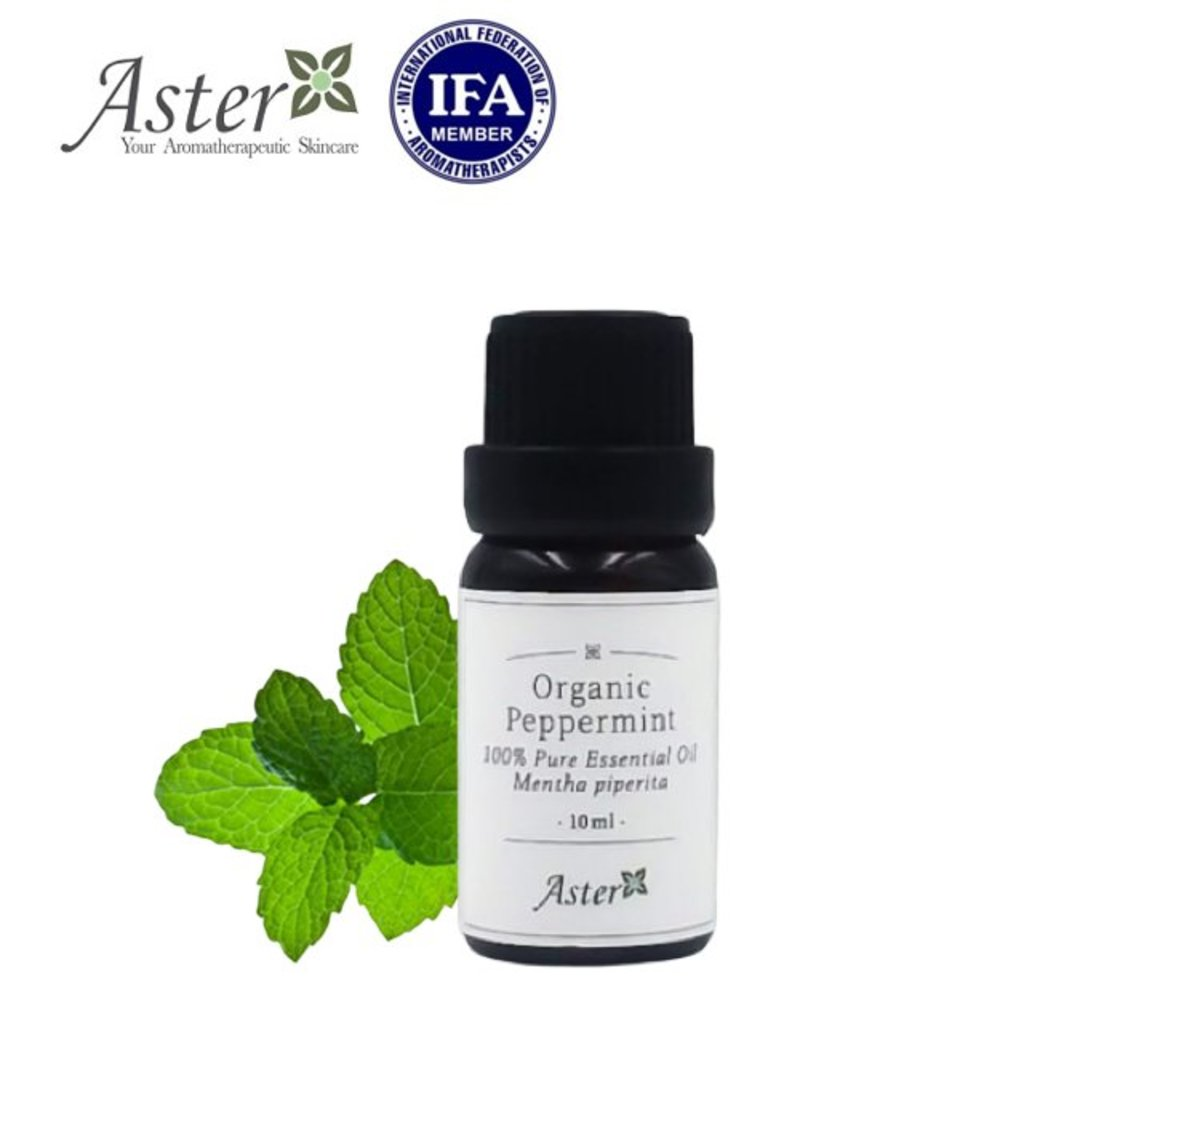 Organic Peppermint Essential Oil (Mentha piperita) - 10ml